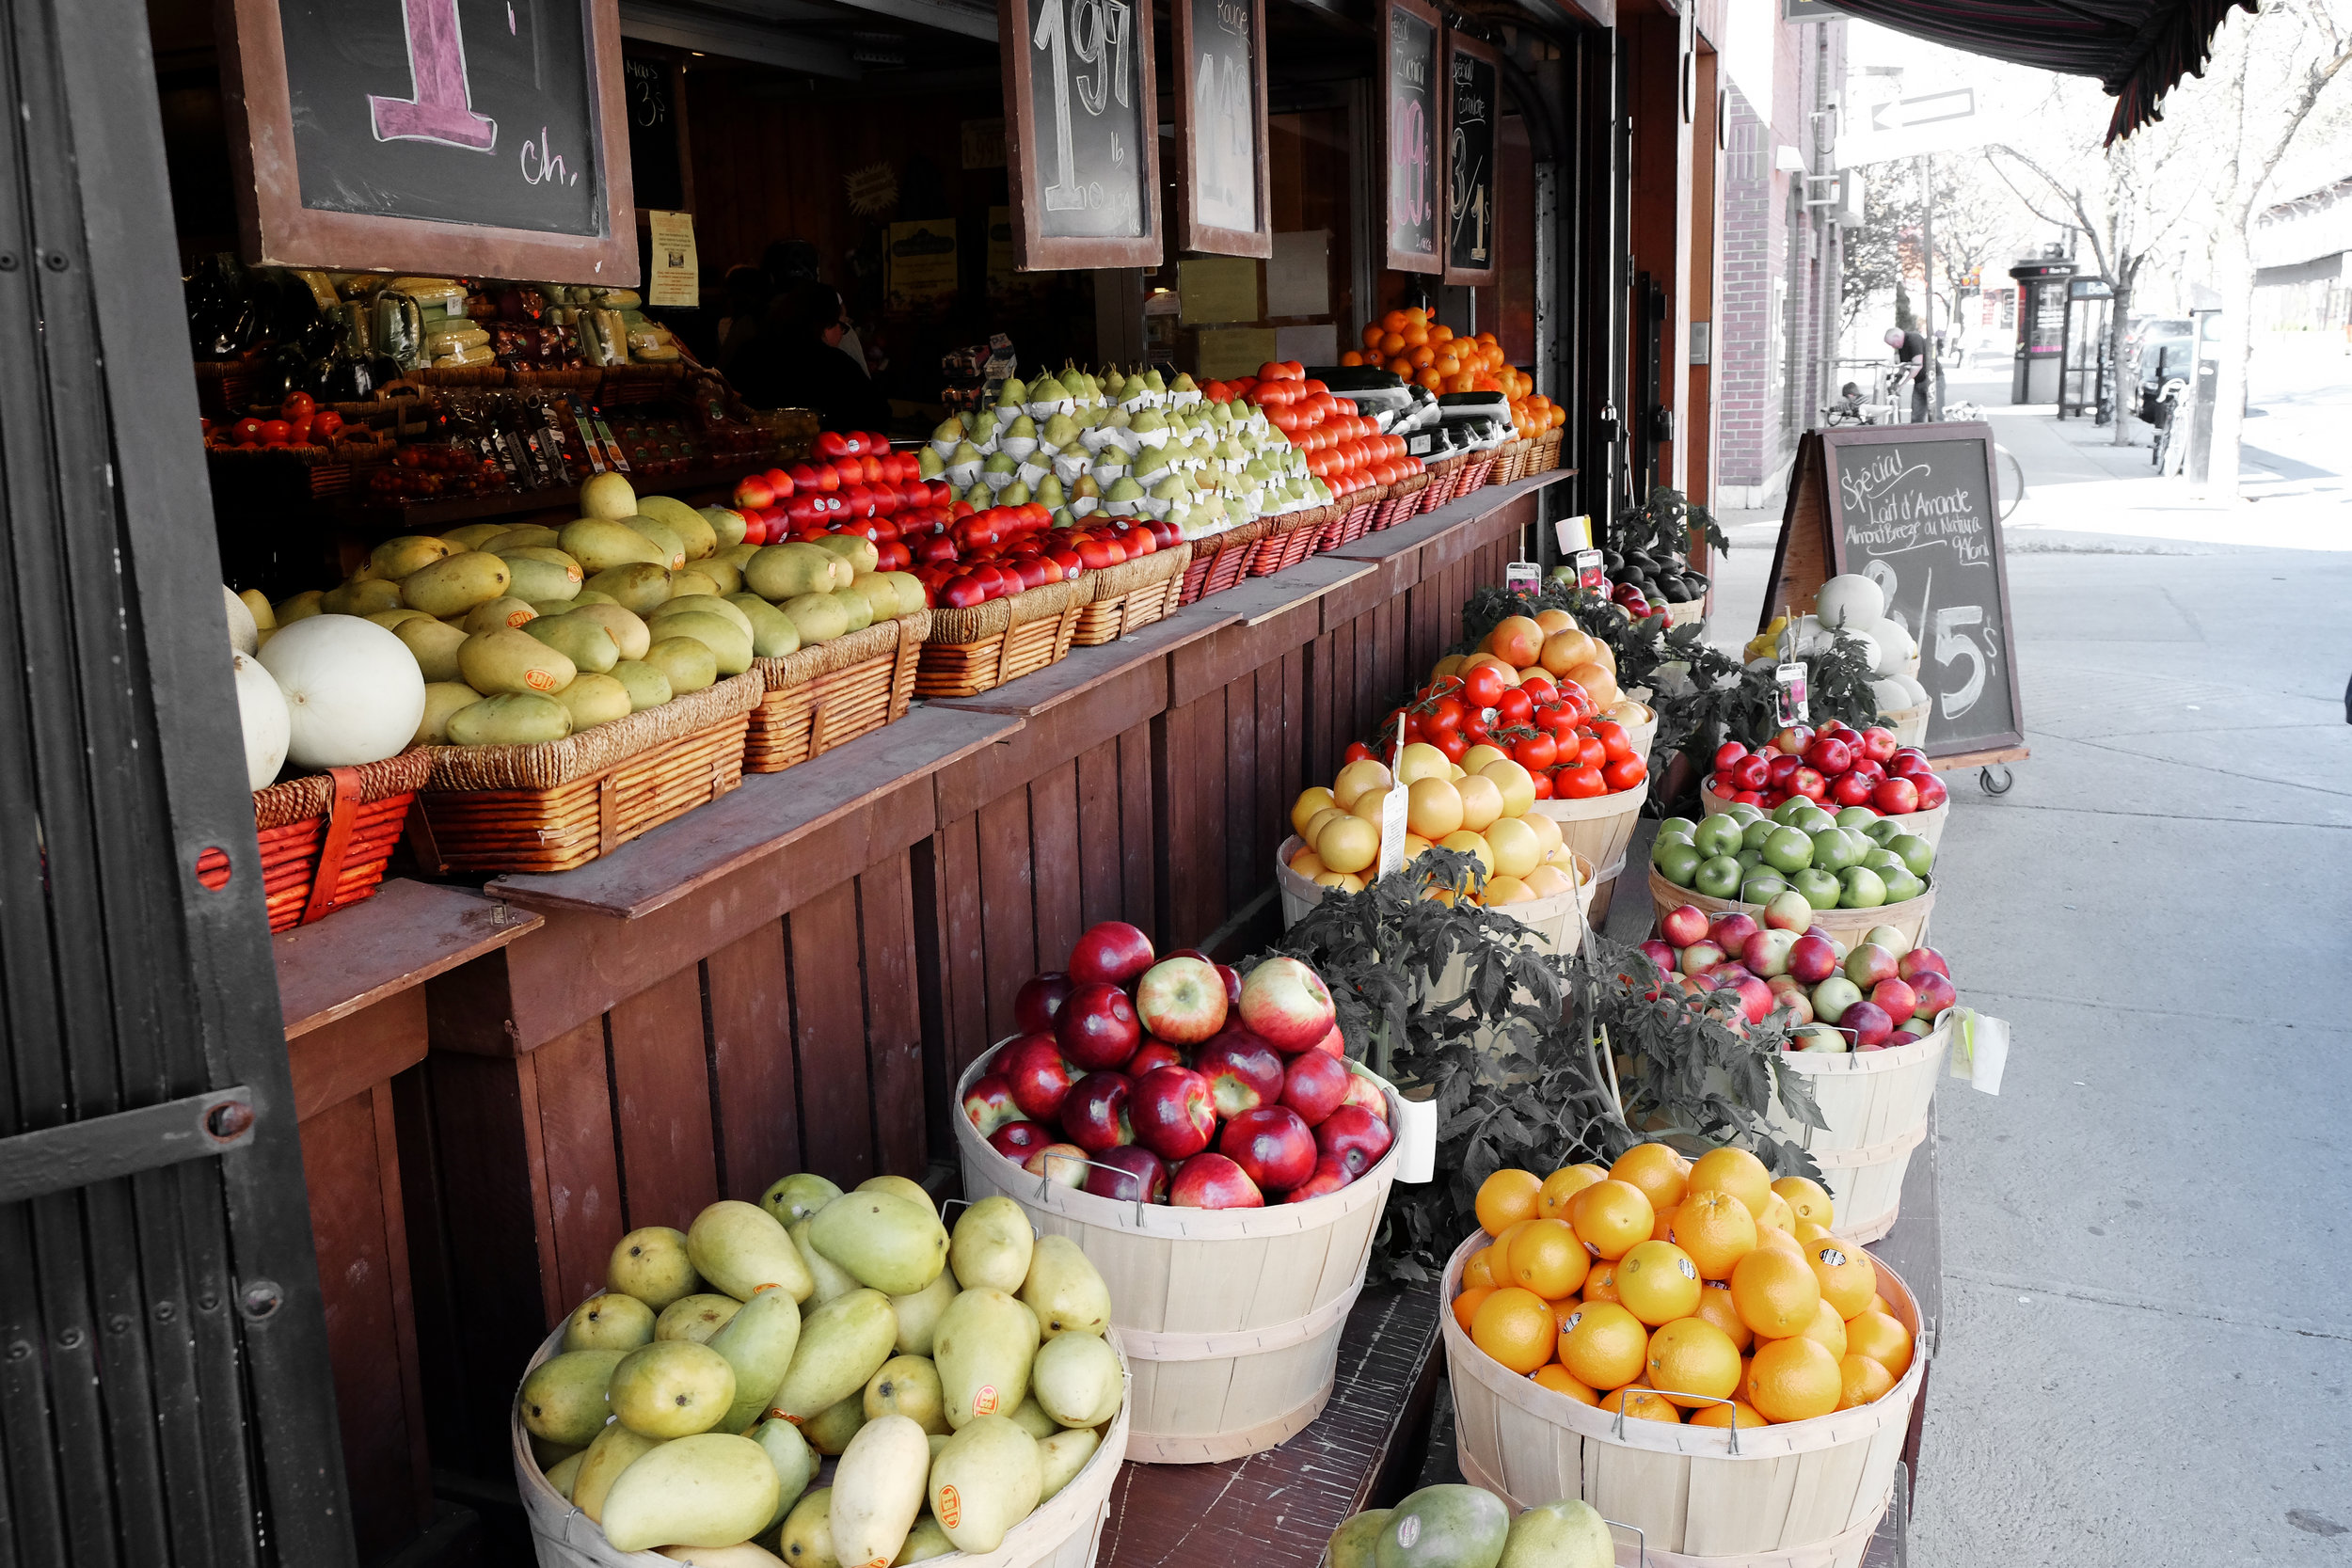 street-market-fruits-grocery.jpg